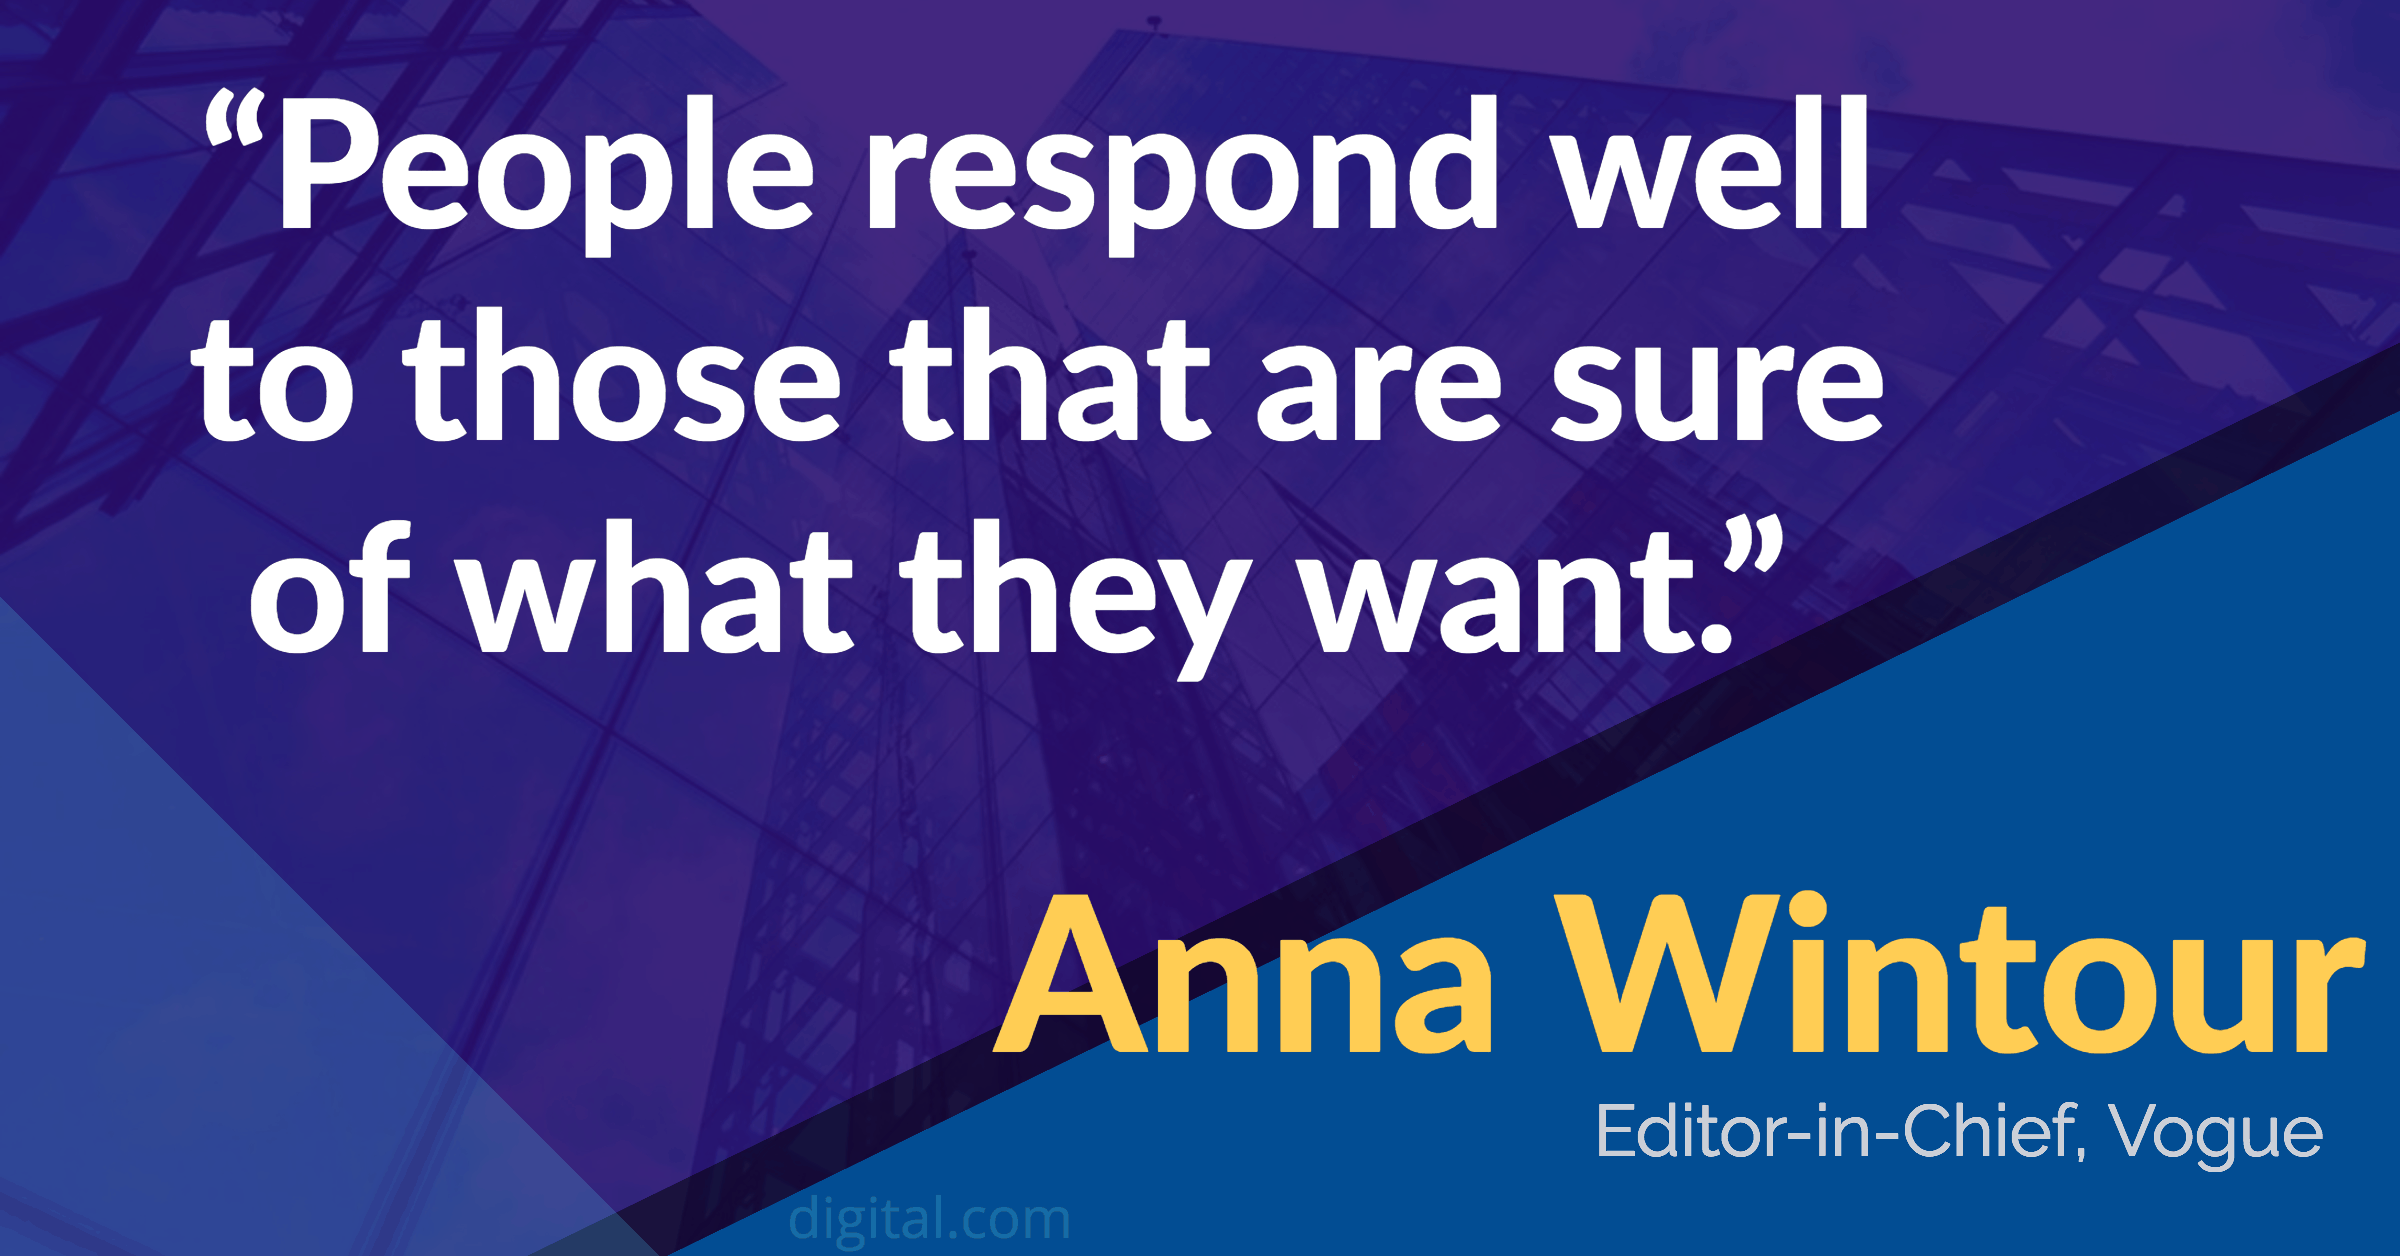 anna wintour leadership quote